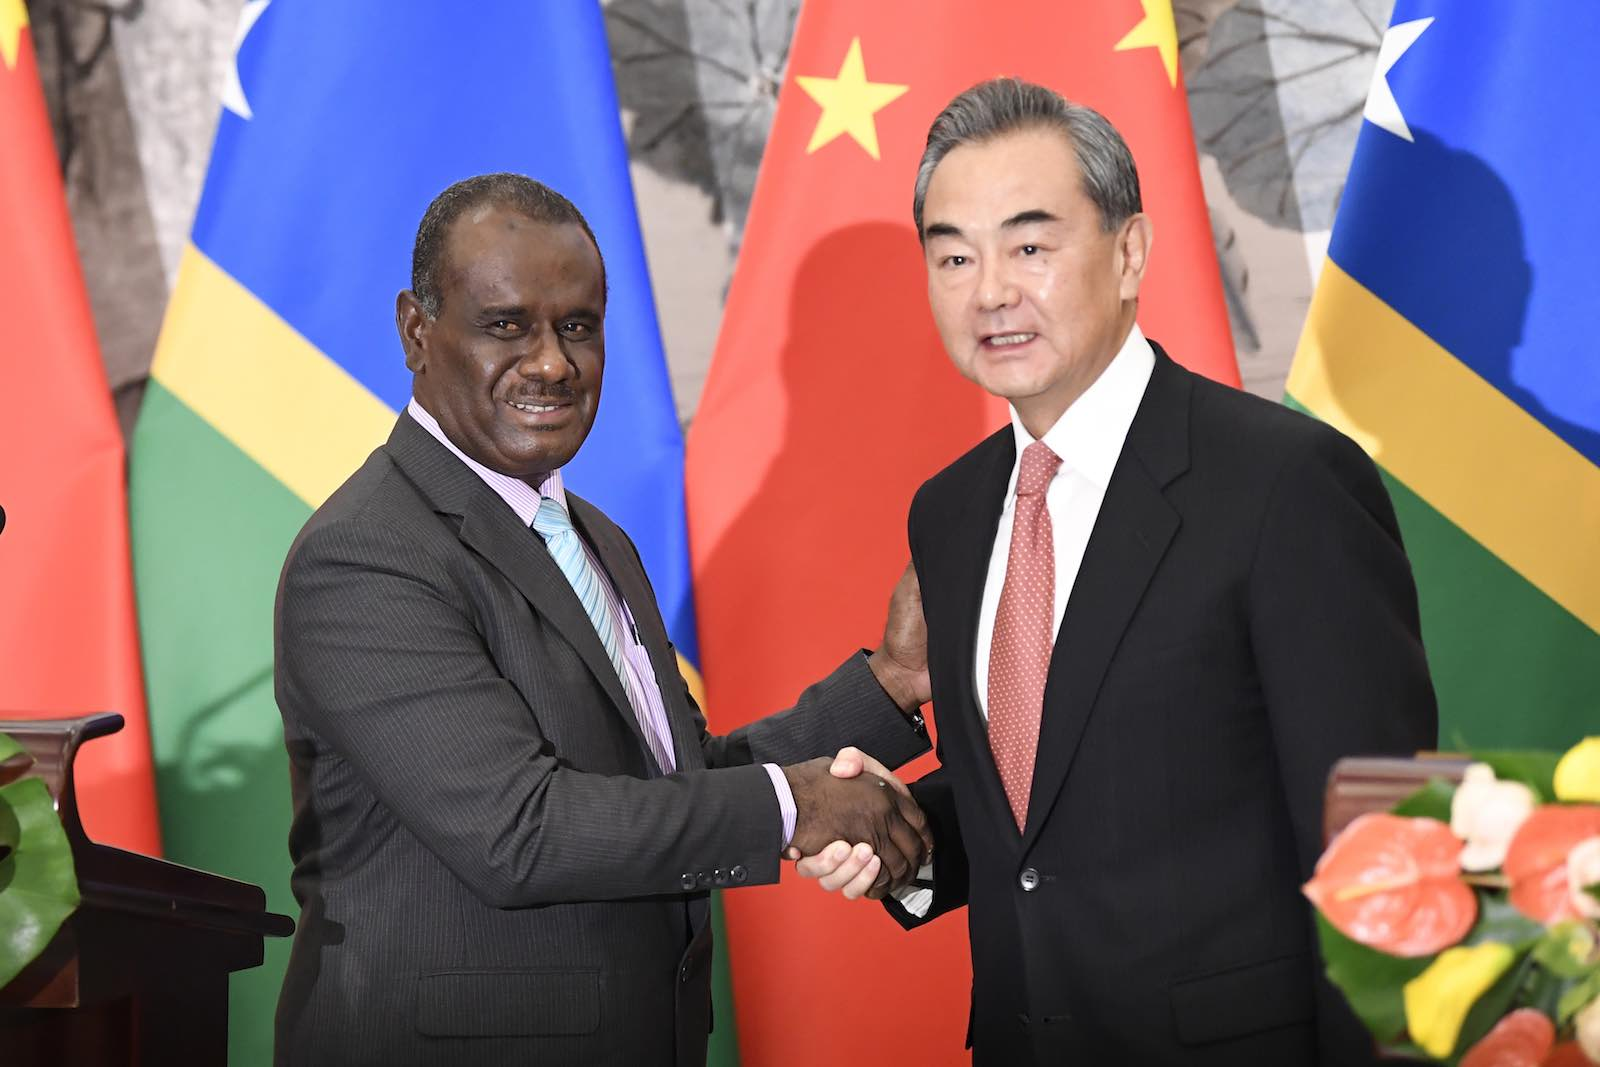 New friends: Solomon Islands Foreign Minister Jeremiah Manele (L) and Chinese Foreign Minister Wang Yi, on 21 September 2019 in Beijing (Photo: Naohiko Hatta via Getty)